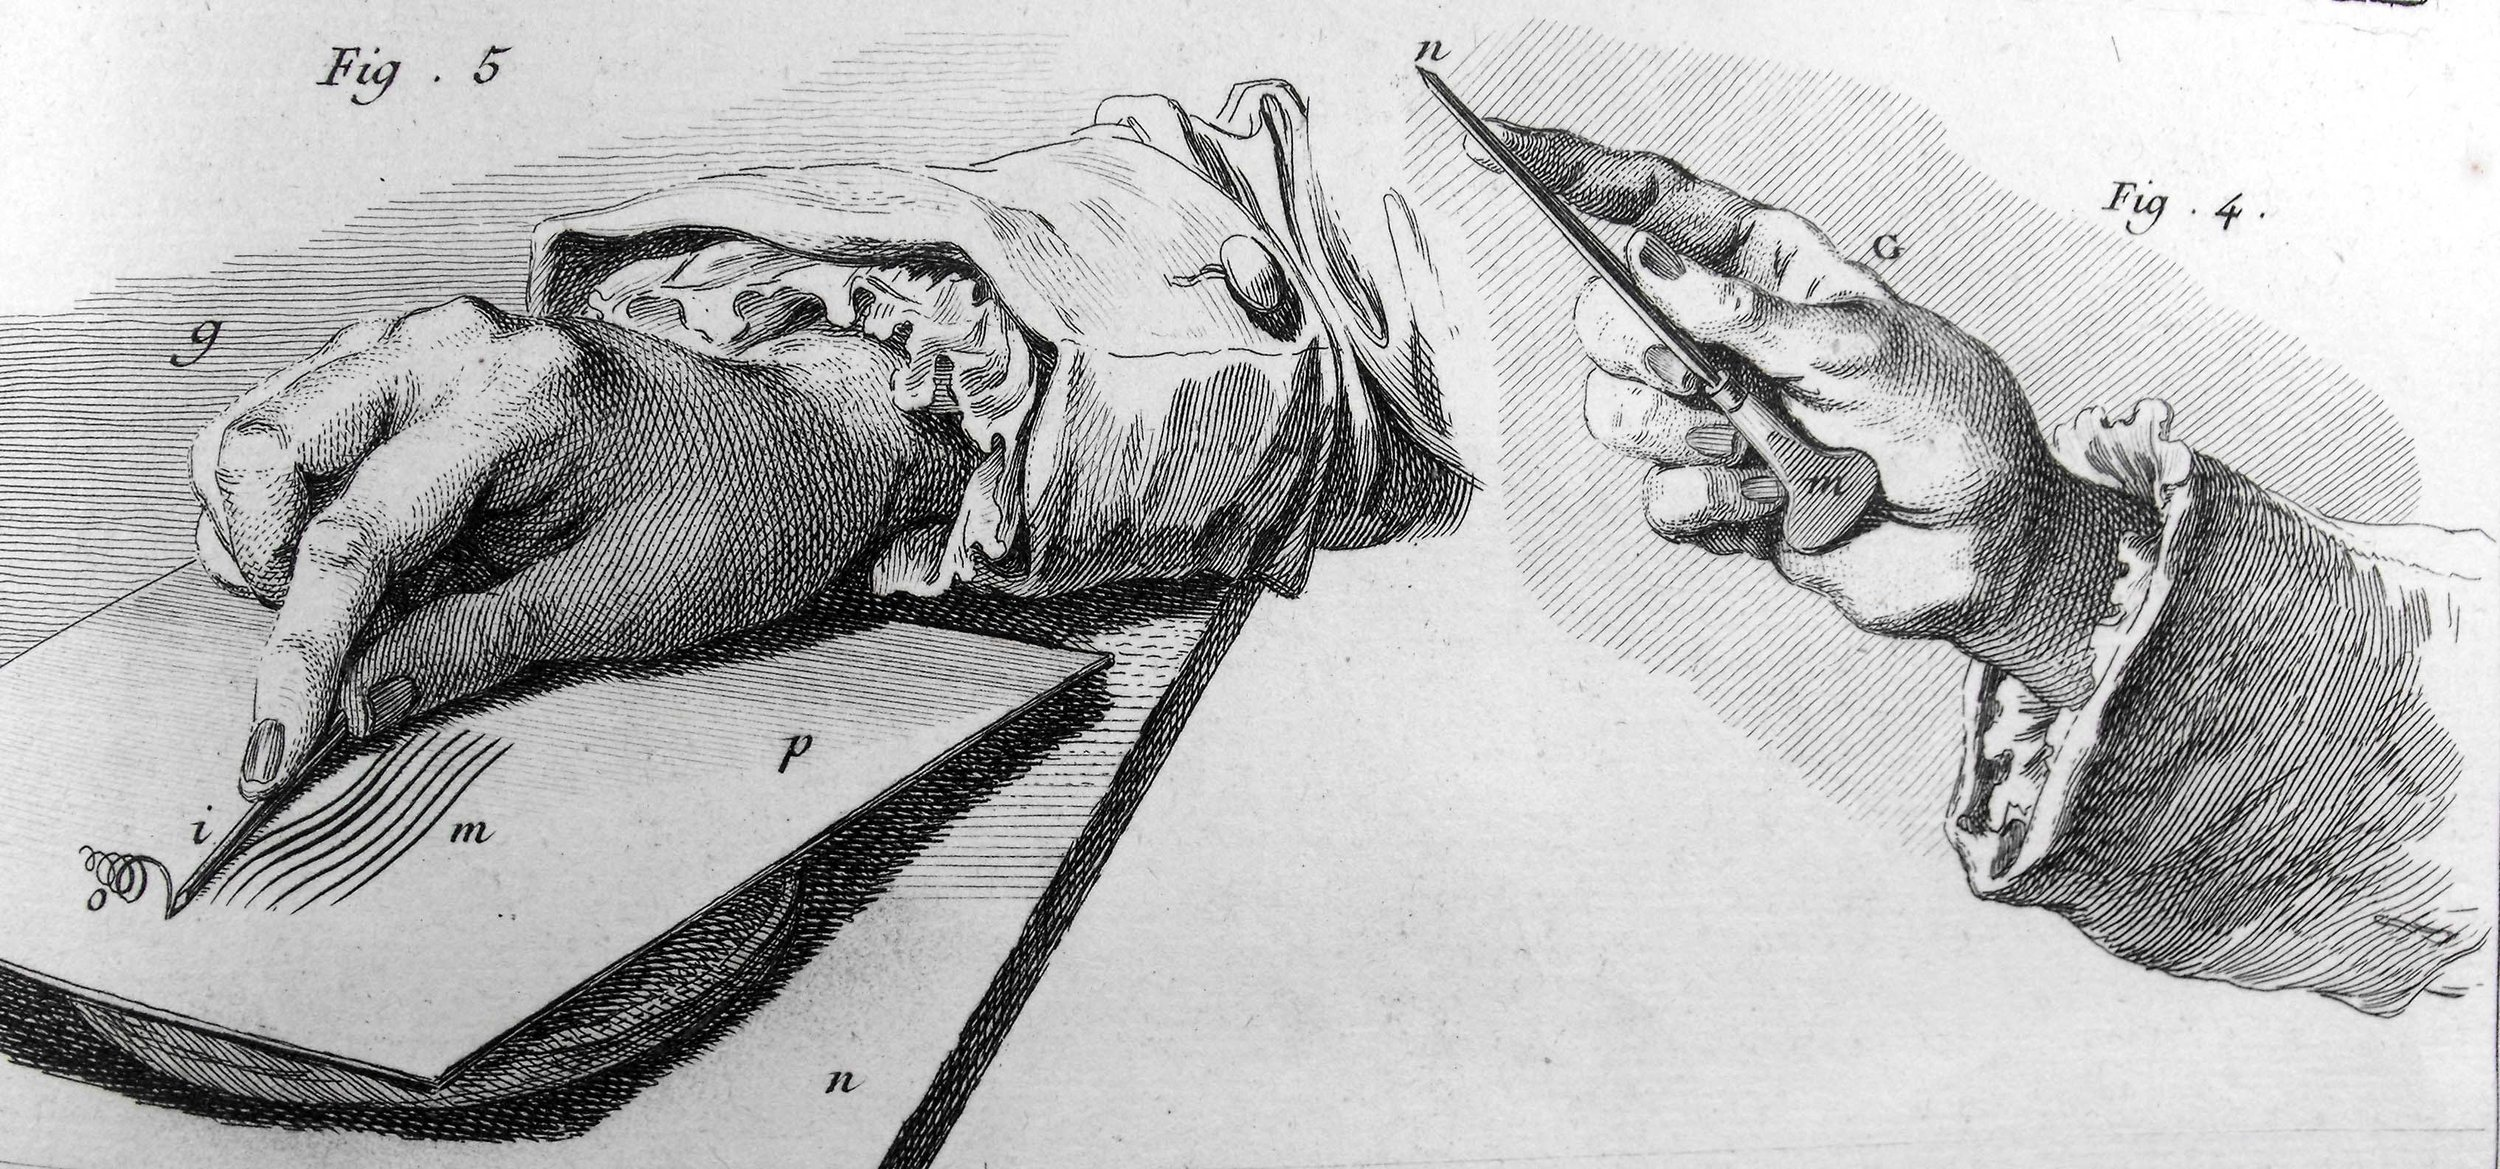 Fig. 5 Illustration of a burin incising a copper plate. Fig 4. Illustration of the correct grip on burin.